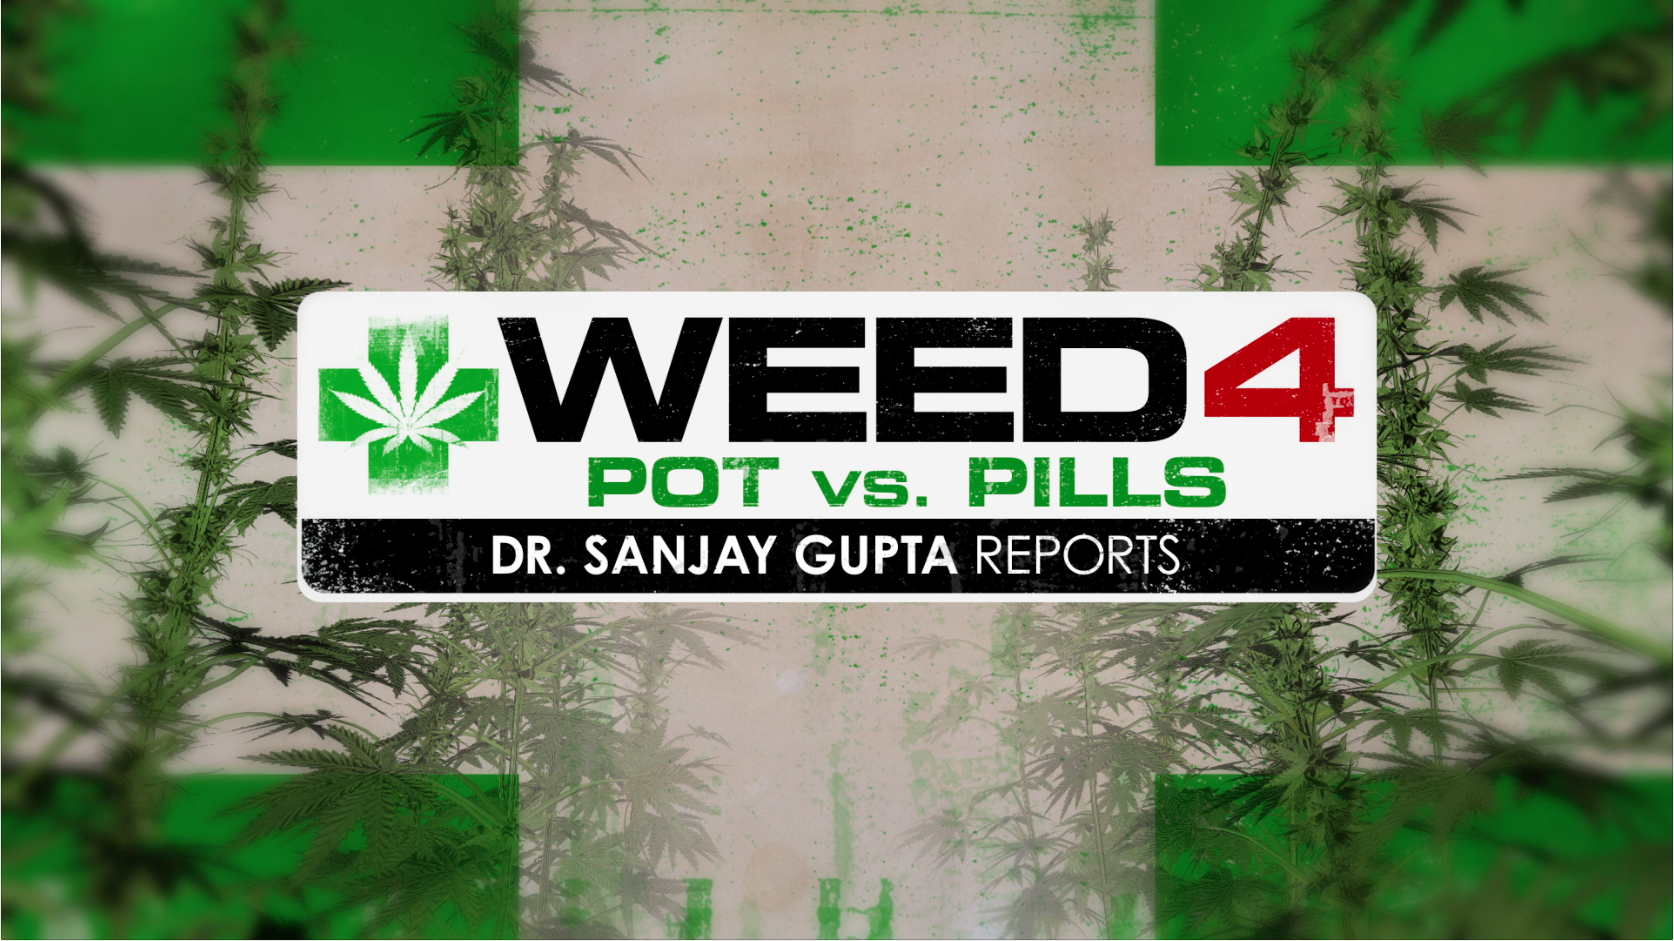 Watch CNN's Weed 4 with Sanjay Gupta